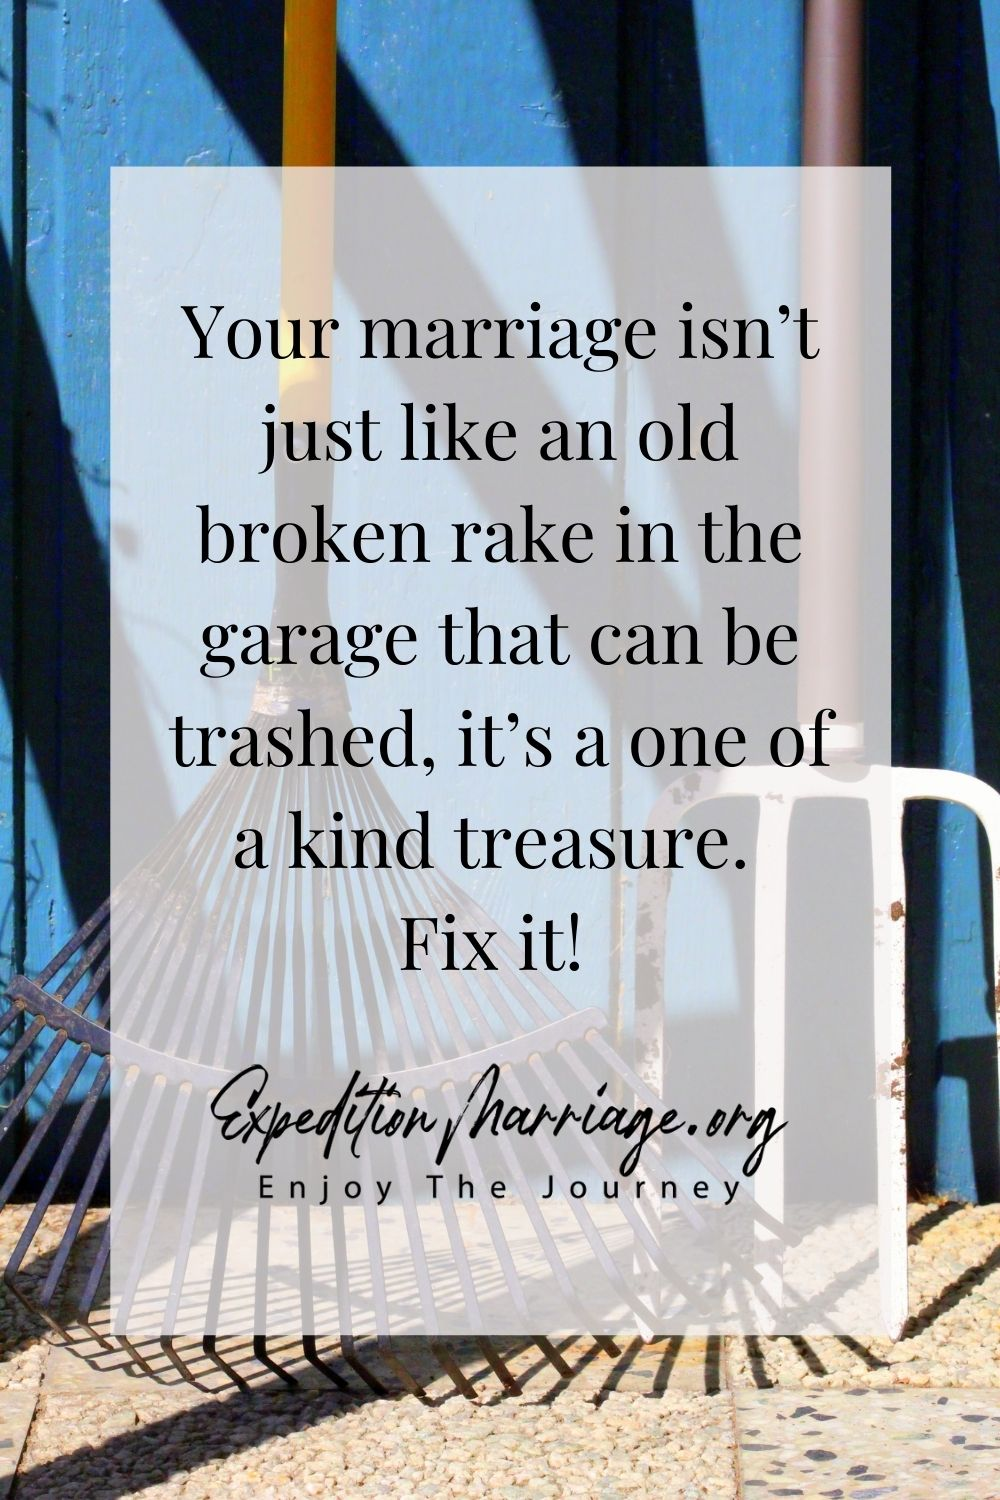 Emphasizing the importance of taking care of marriage